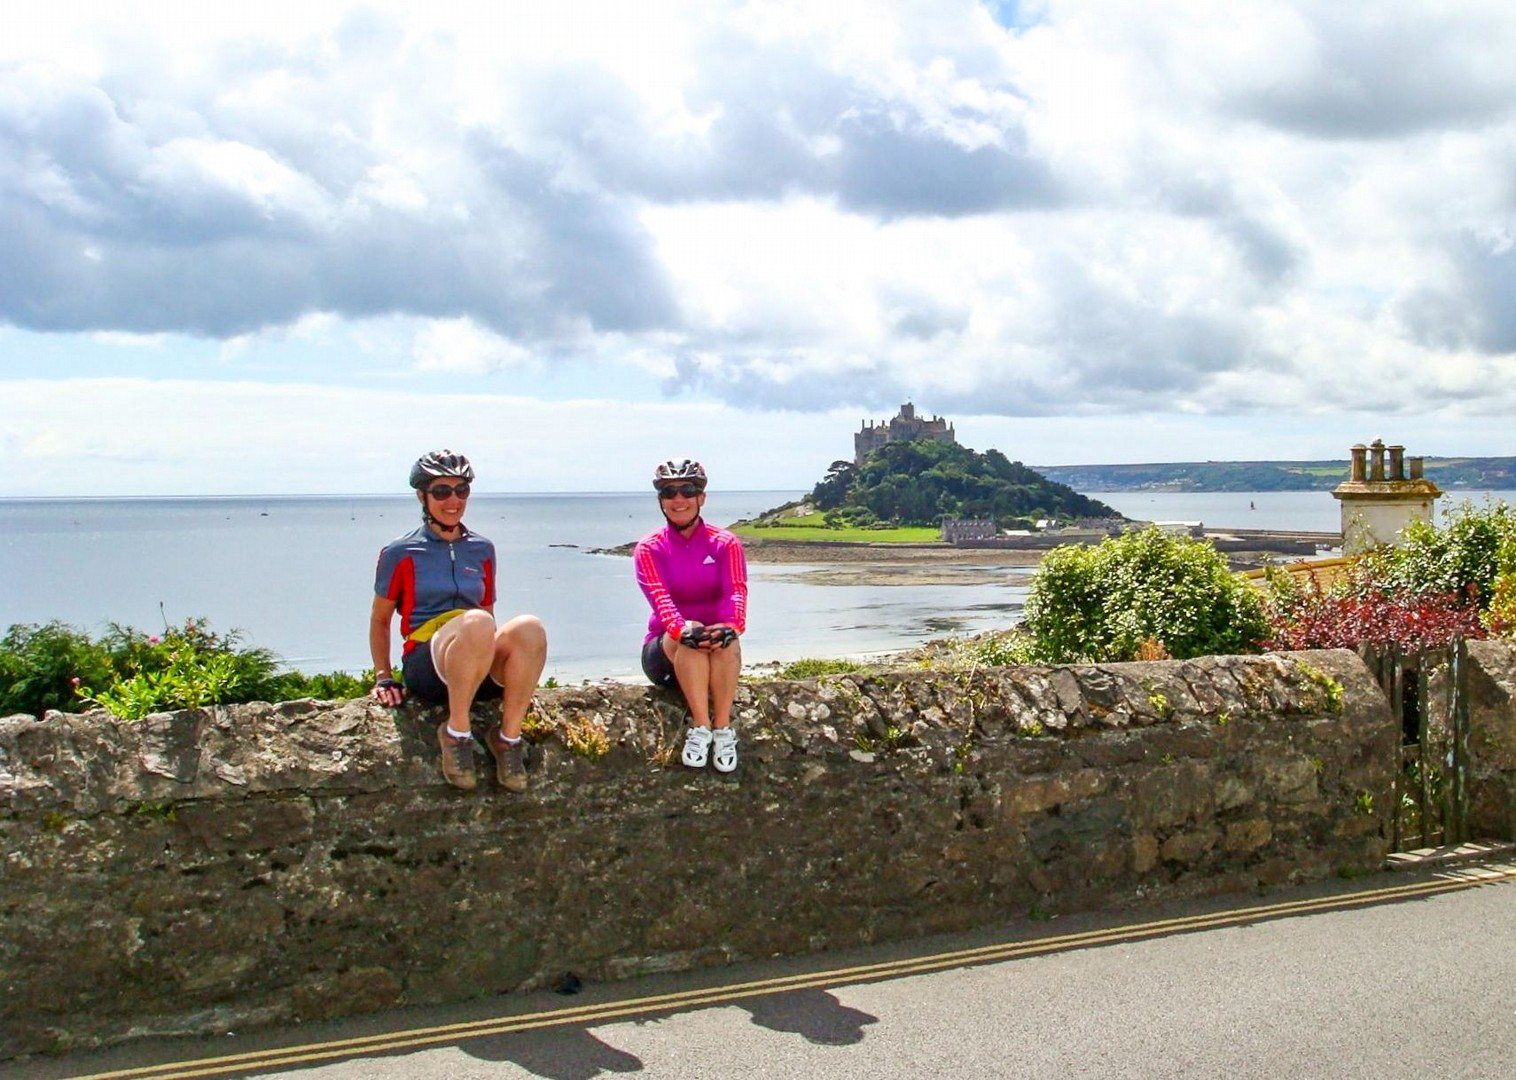 guided-cycling-holiday-uk-lands-end-to-john-ogroats-britain-saddle-skedaddle.jpg - UK - Land's End to John O'Groats Explorer (22 days) - Guided Cycling Holiday - Leisure Cycling